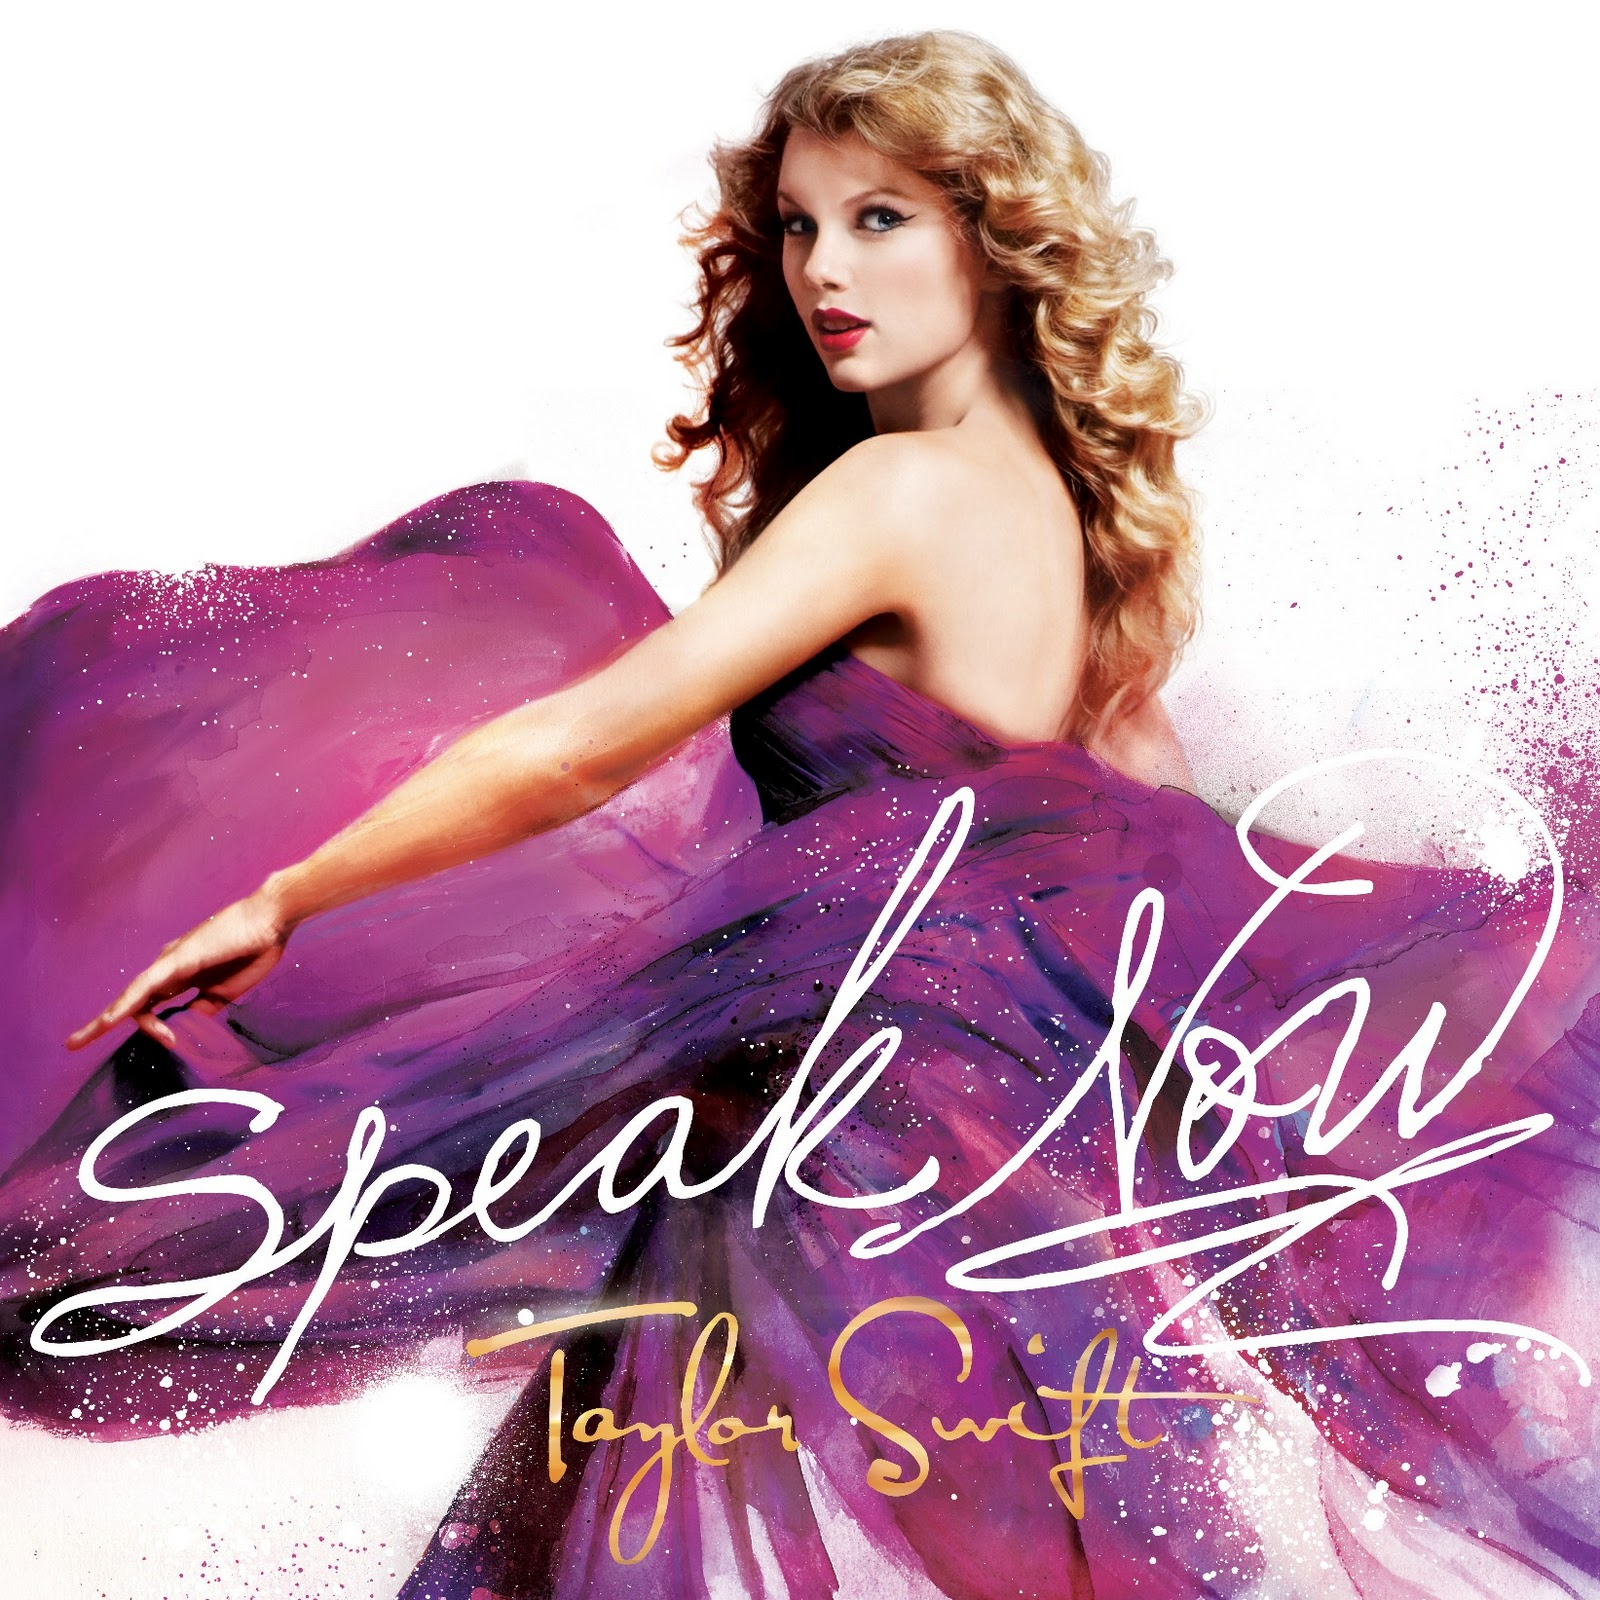 http://3.bp.blogspot.com/_ufwUD8GYX8Y/TMTHQSgcS4I/AAAAAAAAAPY/gwG5shlIkeg/s1600/Taylor+Swift+-+Speak+Now.jpg